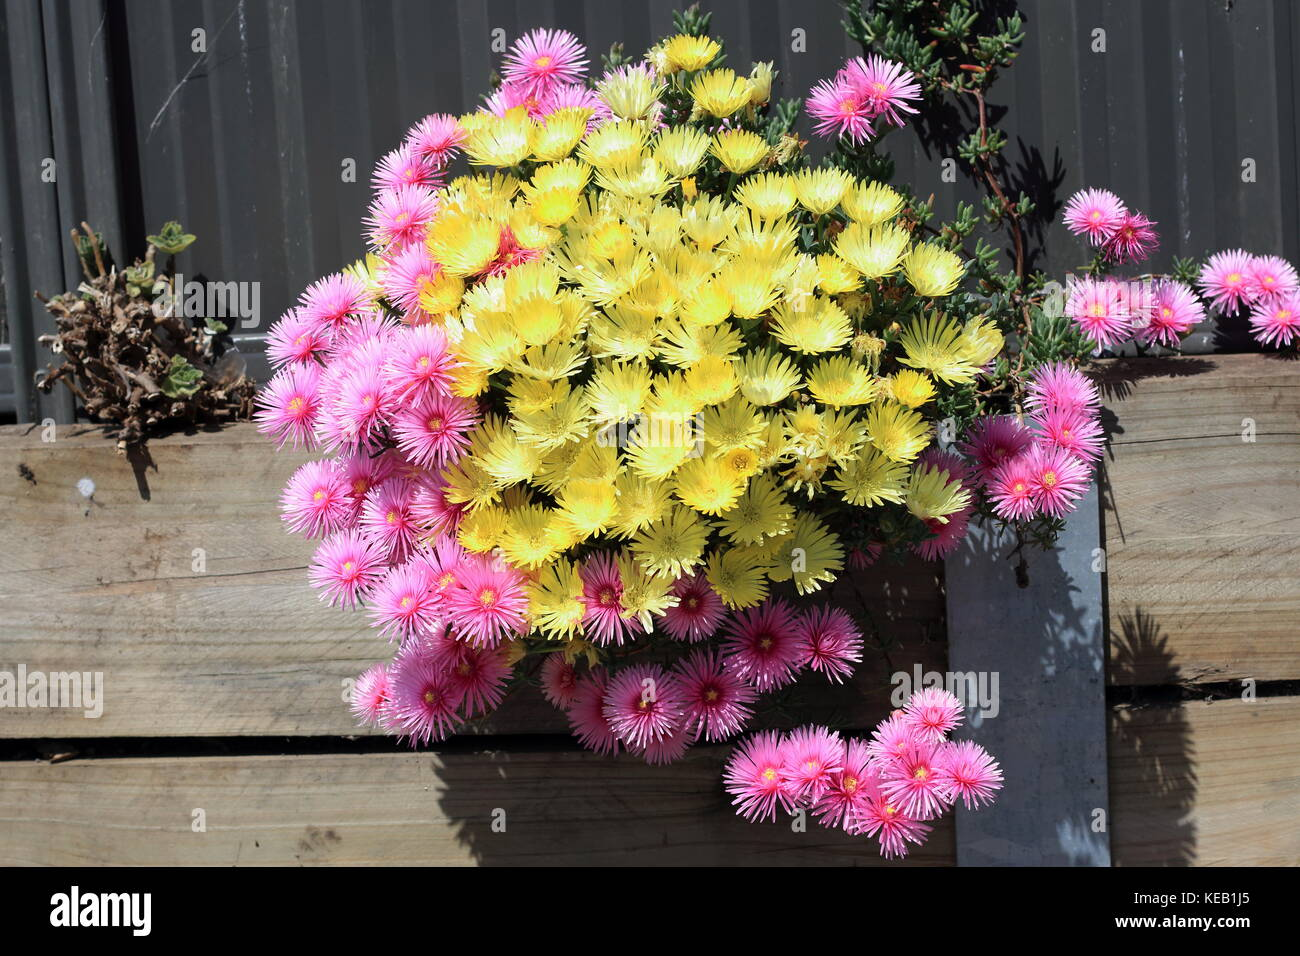 Pink and yellow Pig face flowers or Mesembryanthemum, ice plant flowers, Livingstone Daisies in full bloom - Stock Image